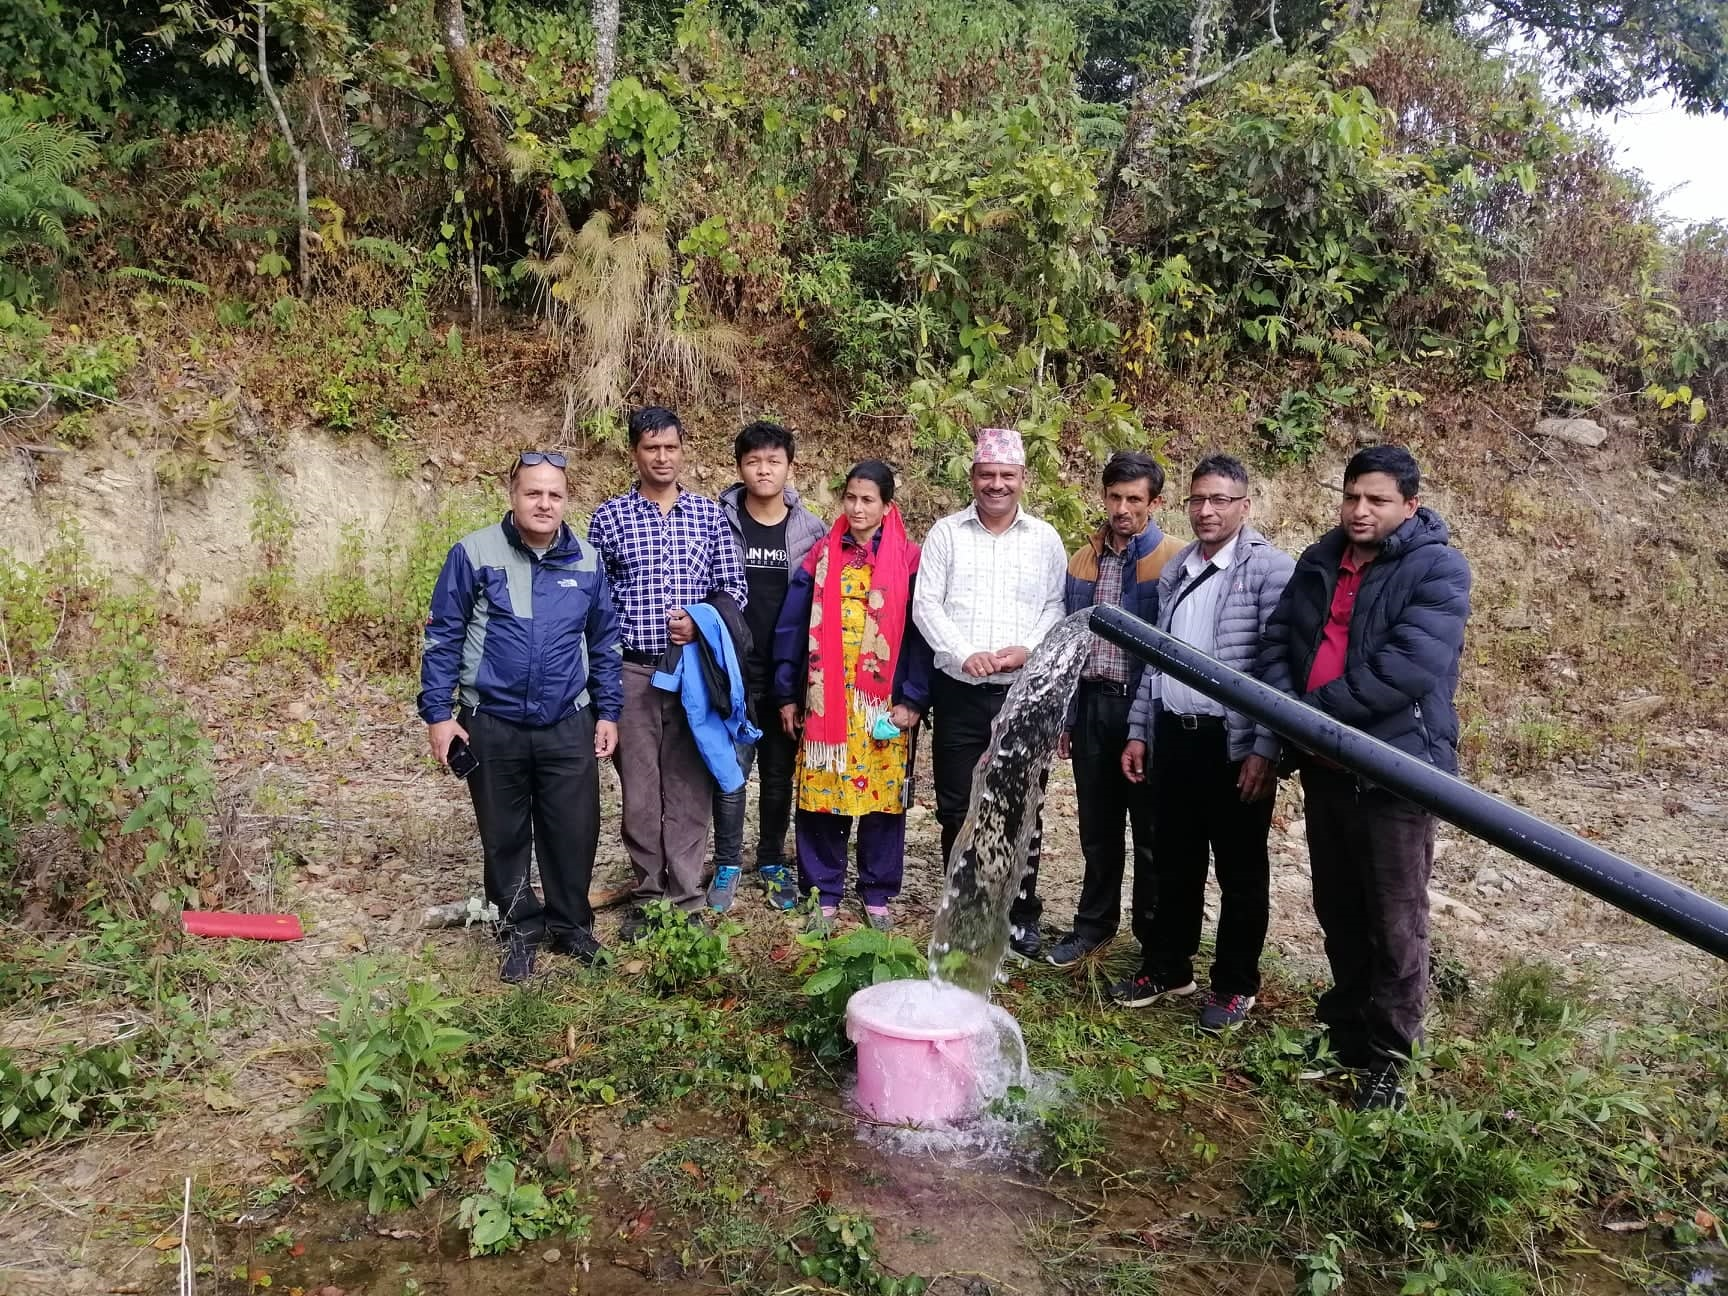 Staff and board member of NRCS Kaski at the highest point of the site (altitude 1335 meters)